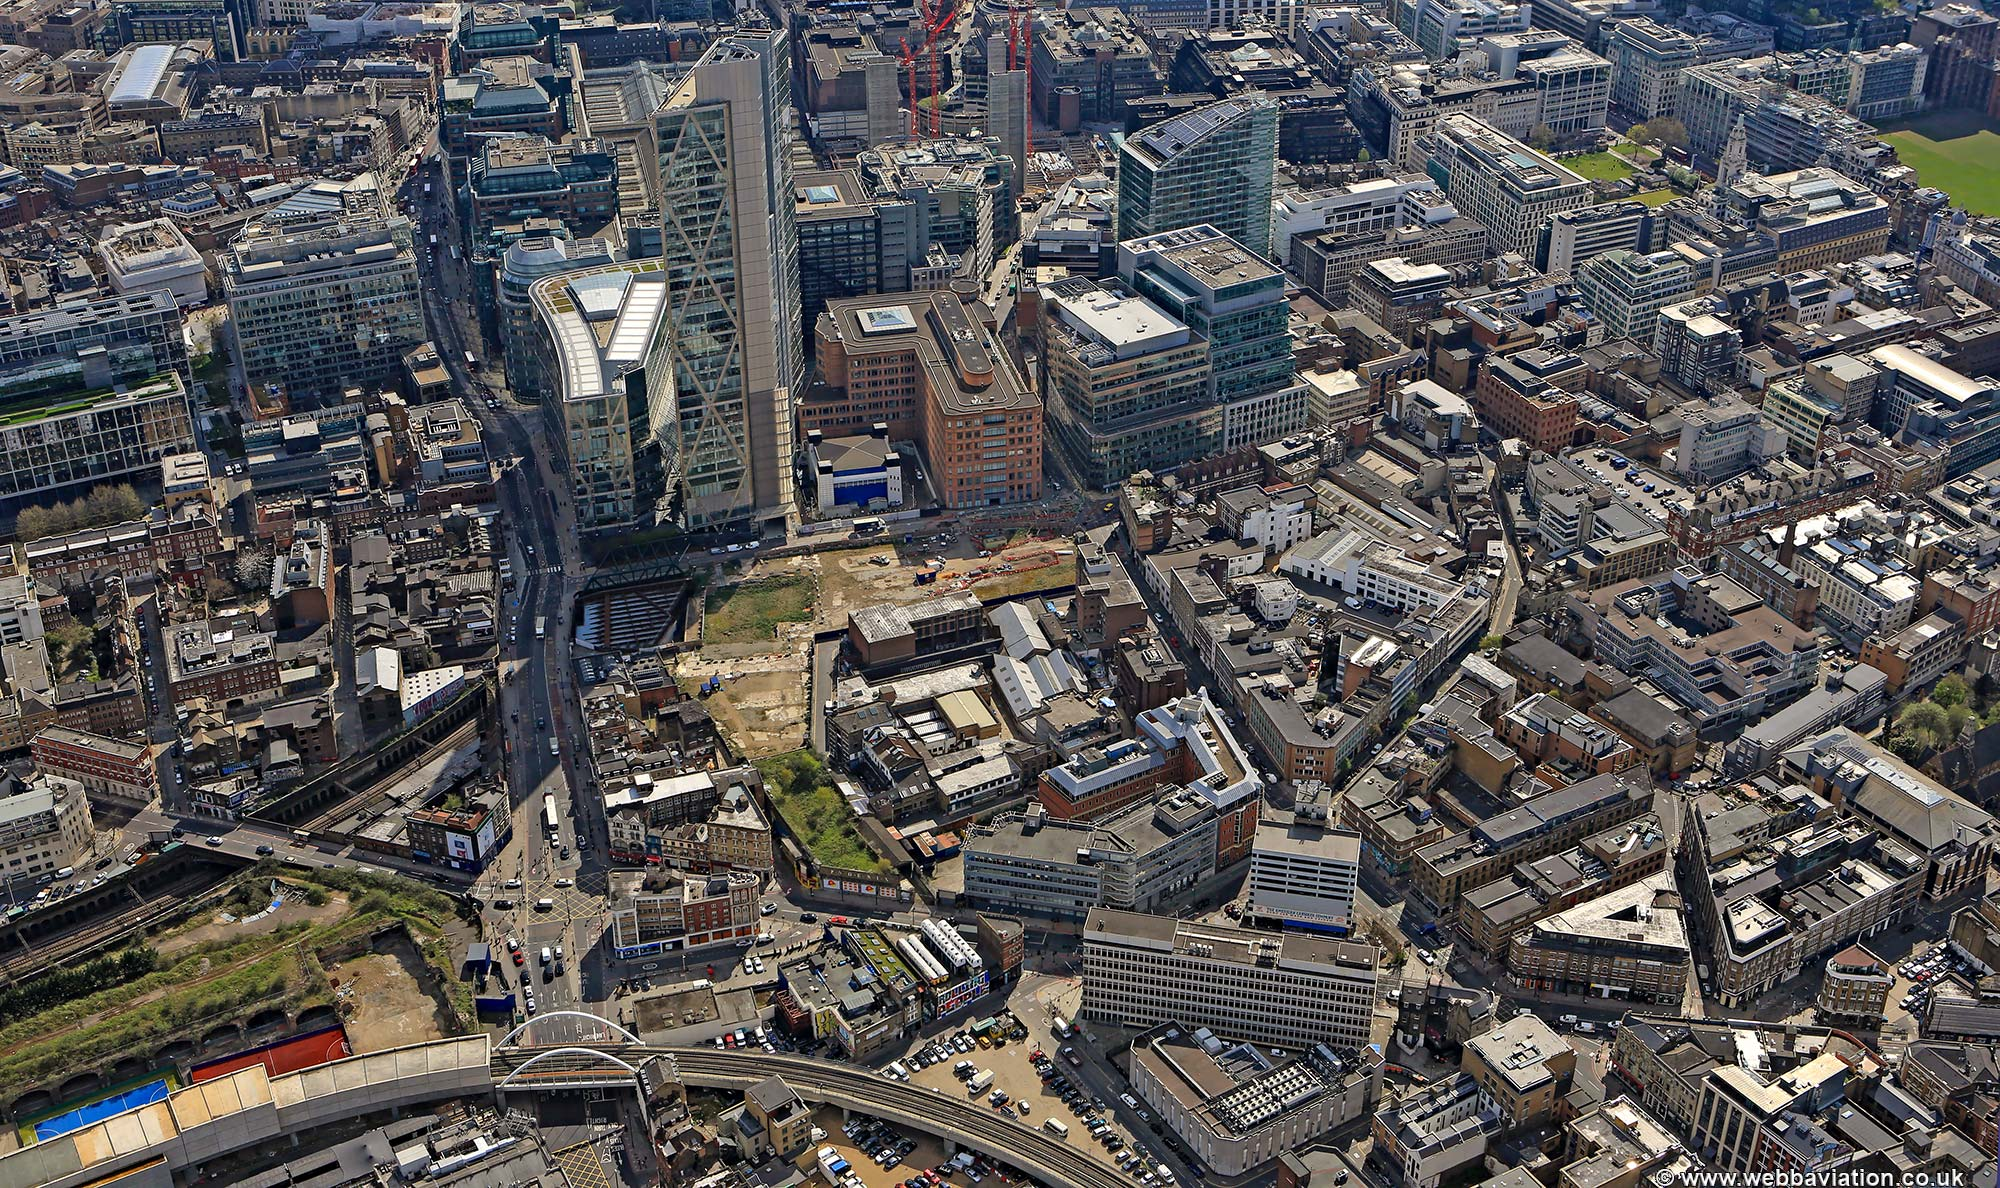 Broad Street Station Hackney London England UK aerial photograph